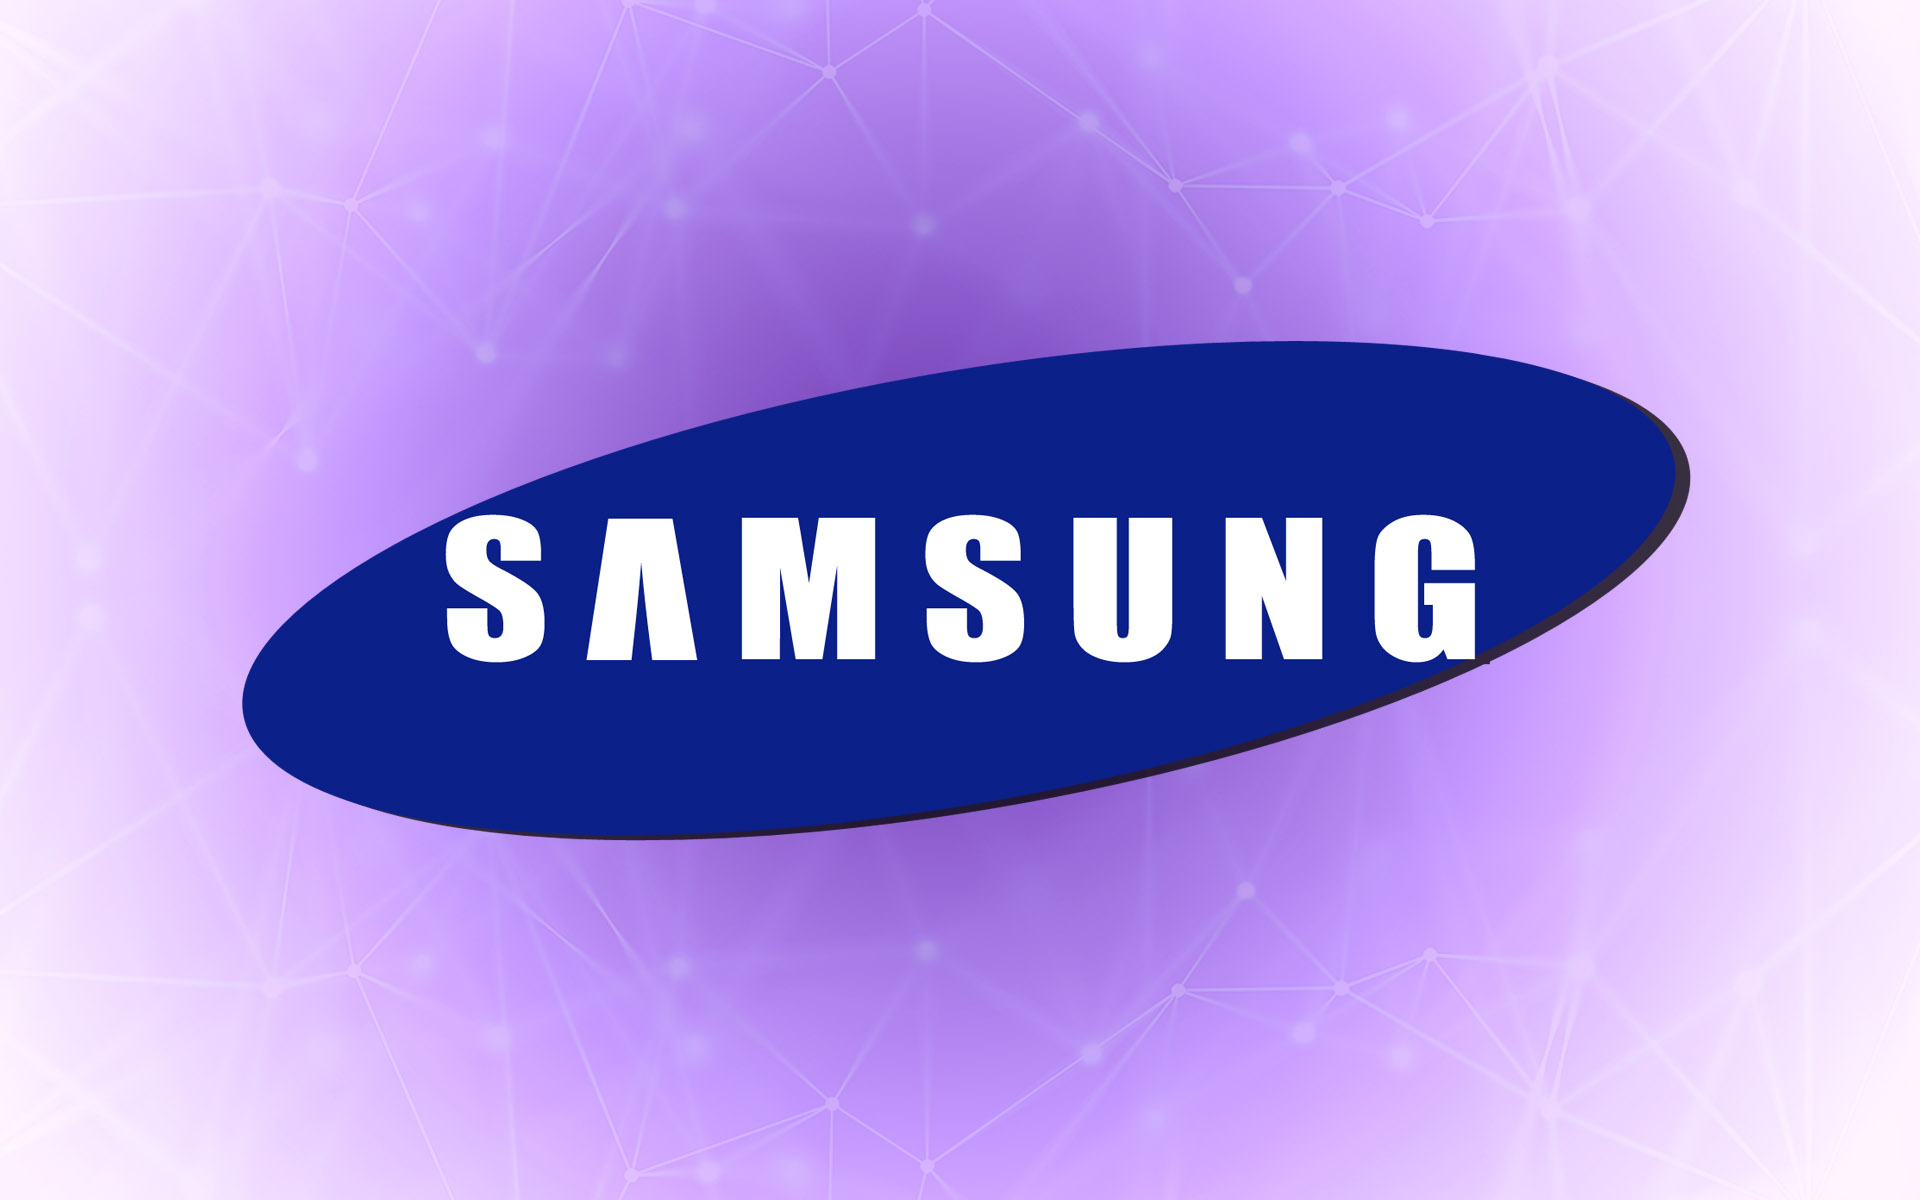 Samsung SDS Partners with QEDIT for Private Blockchain Transactions